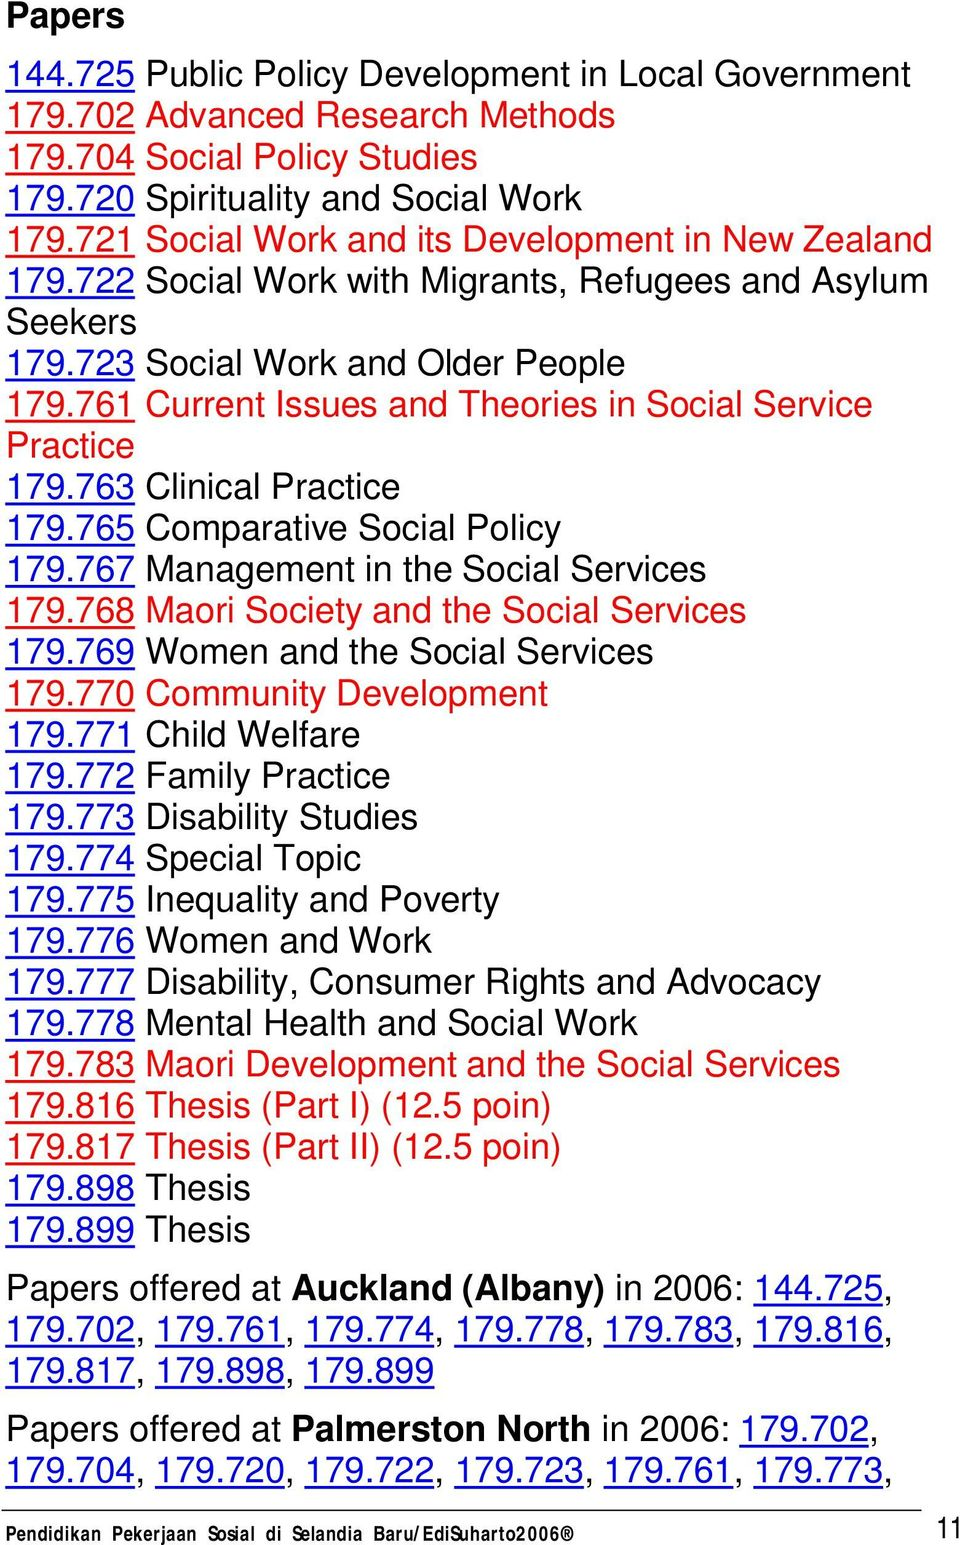 761 Current Issues and Theories in Social Service Practice 179.763 Clinical Practice 179.765 Comparative Social Policy 179.767 Management in the Social Services 179.